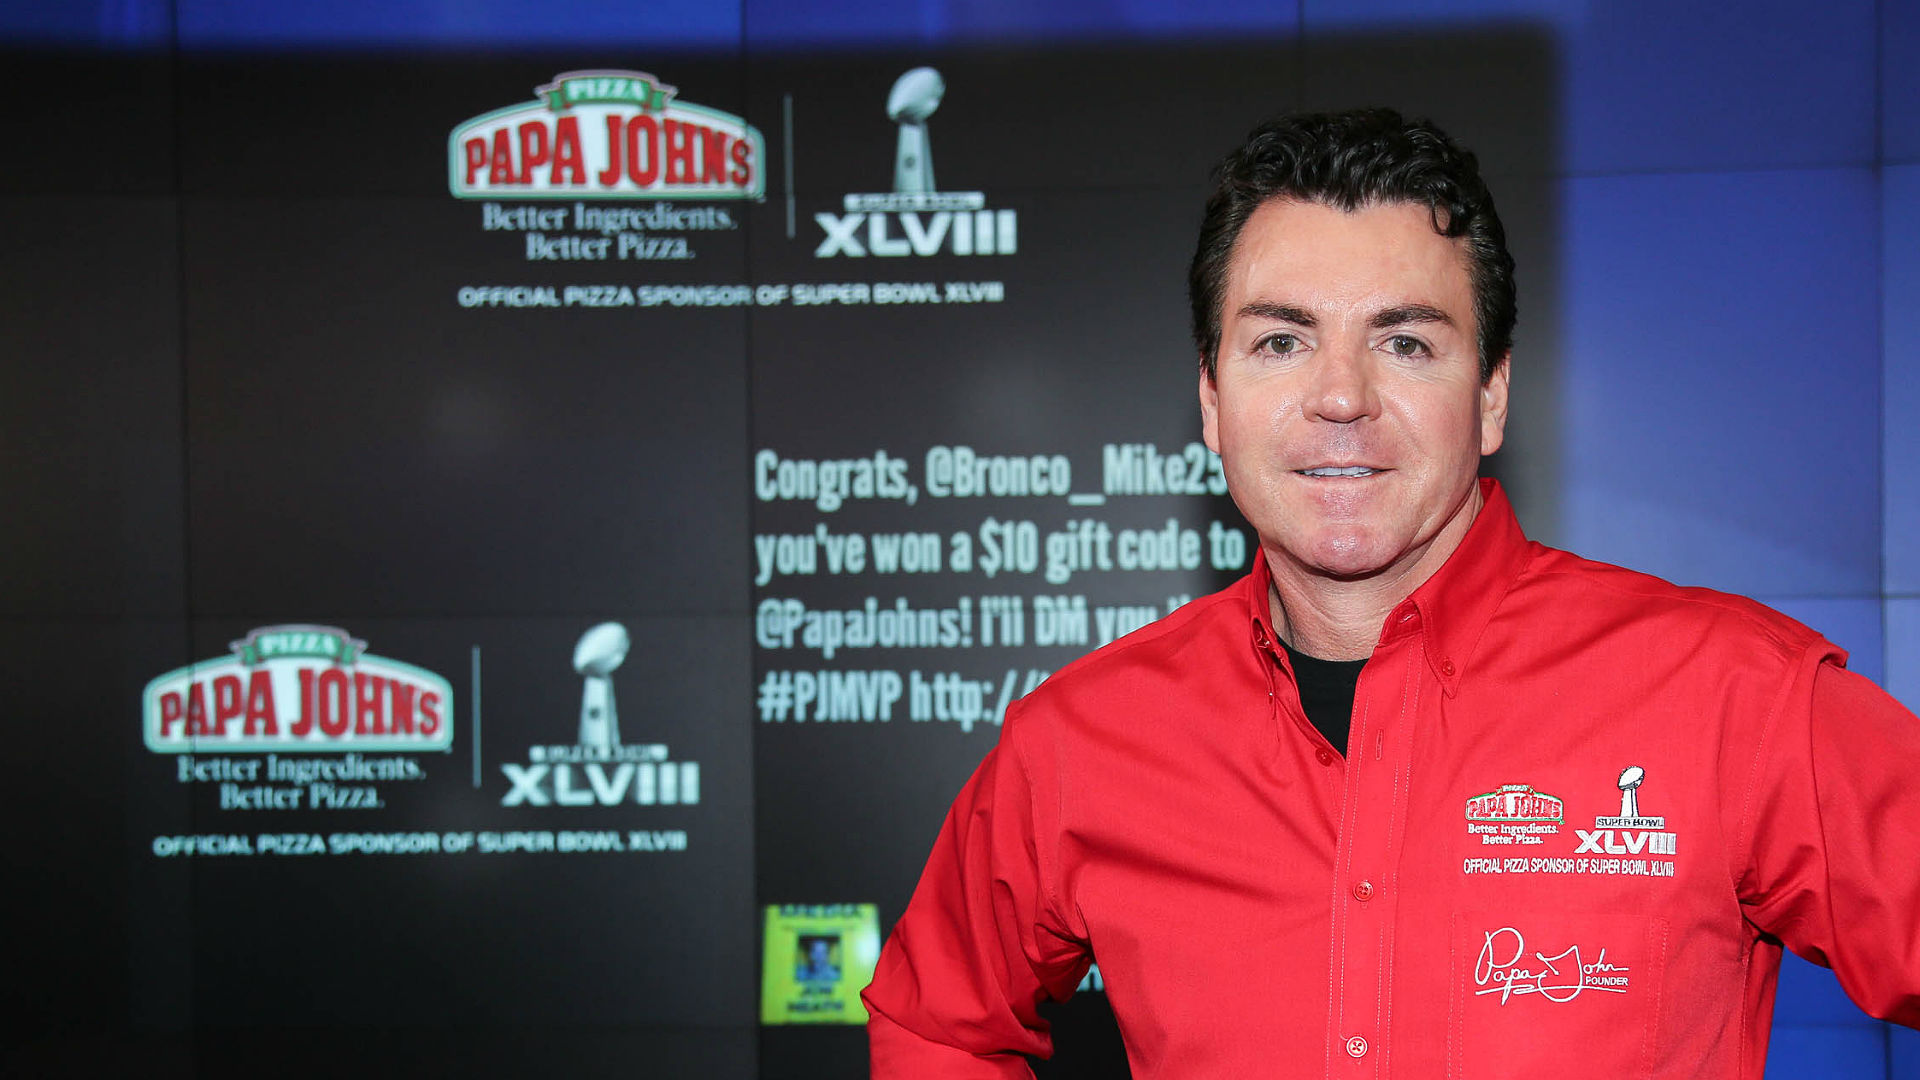 Papa John's apologizes for comments about National Football League  player protests